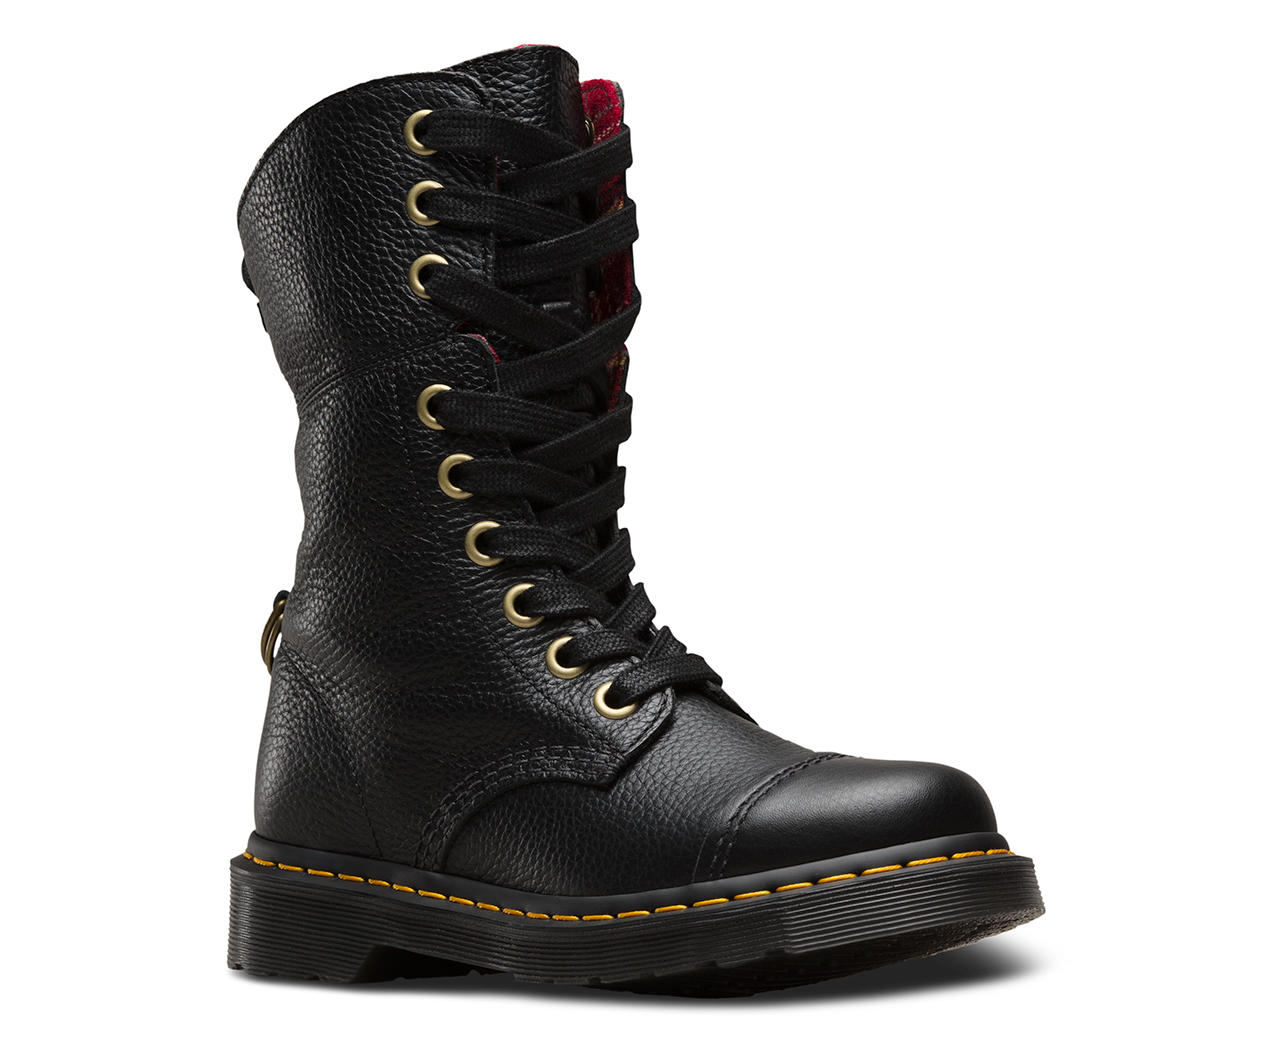 AIMILITA AUNT SALLY | Women's Boots | The Official US Dr ...